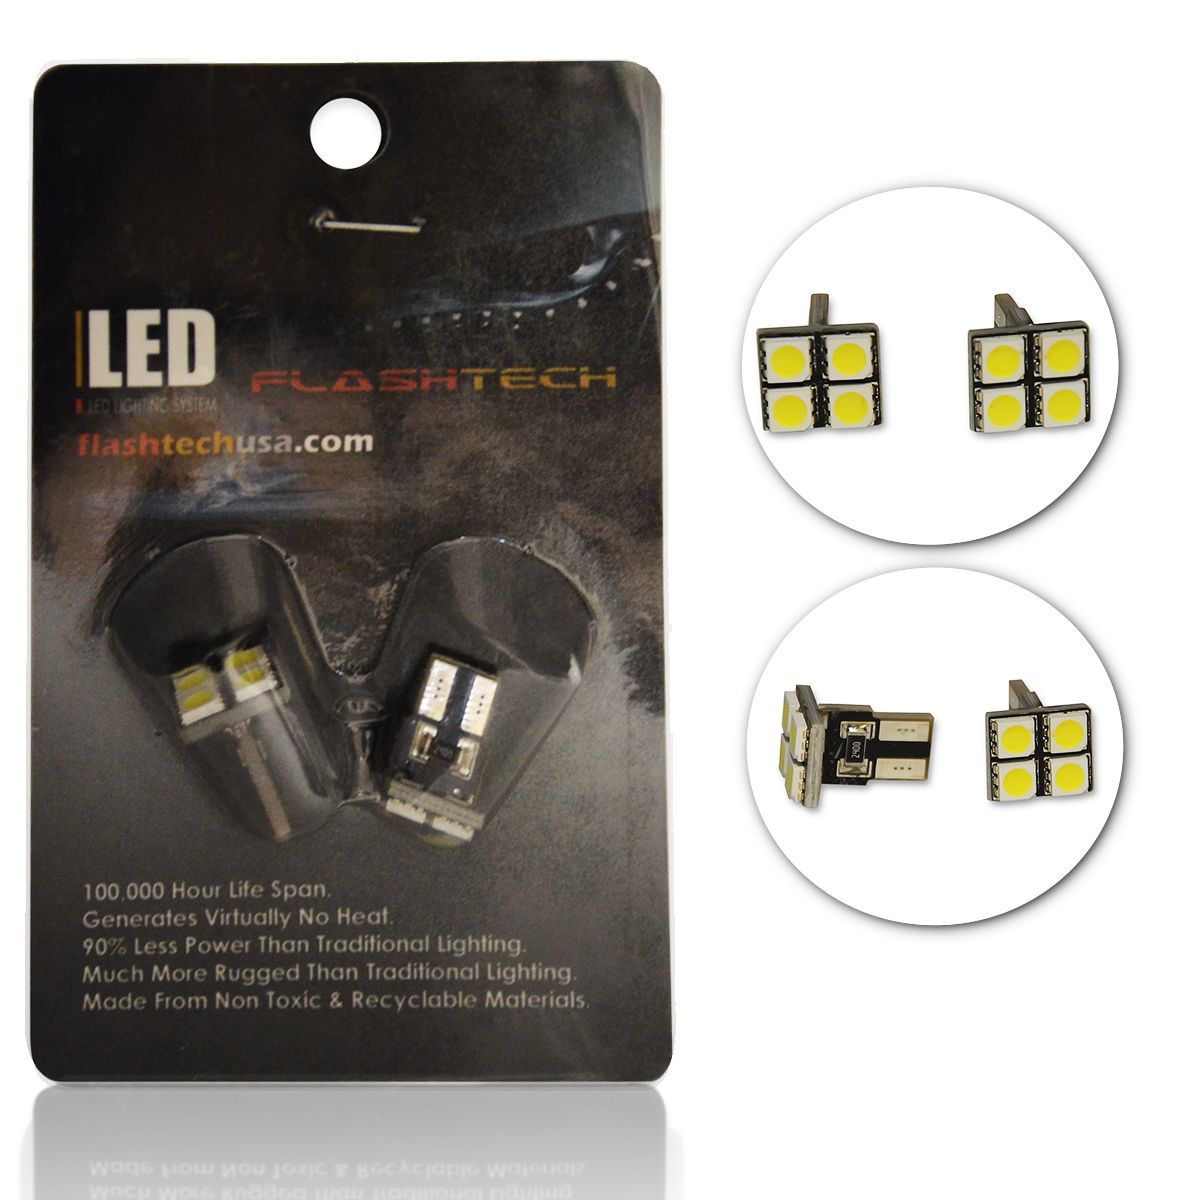 LED Exterior and Interior SMD LED Bulbs - 4 5050 LED - T10 Flat Canbus